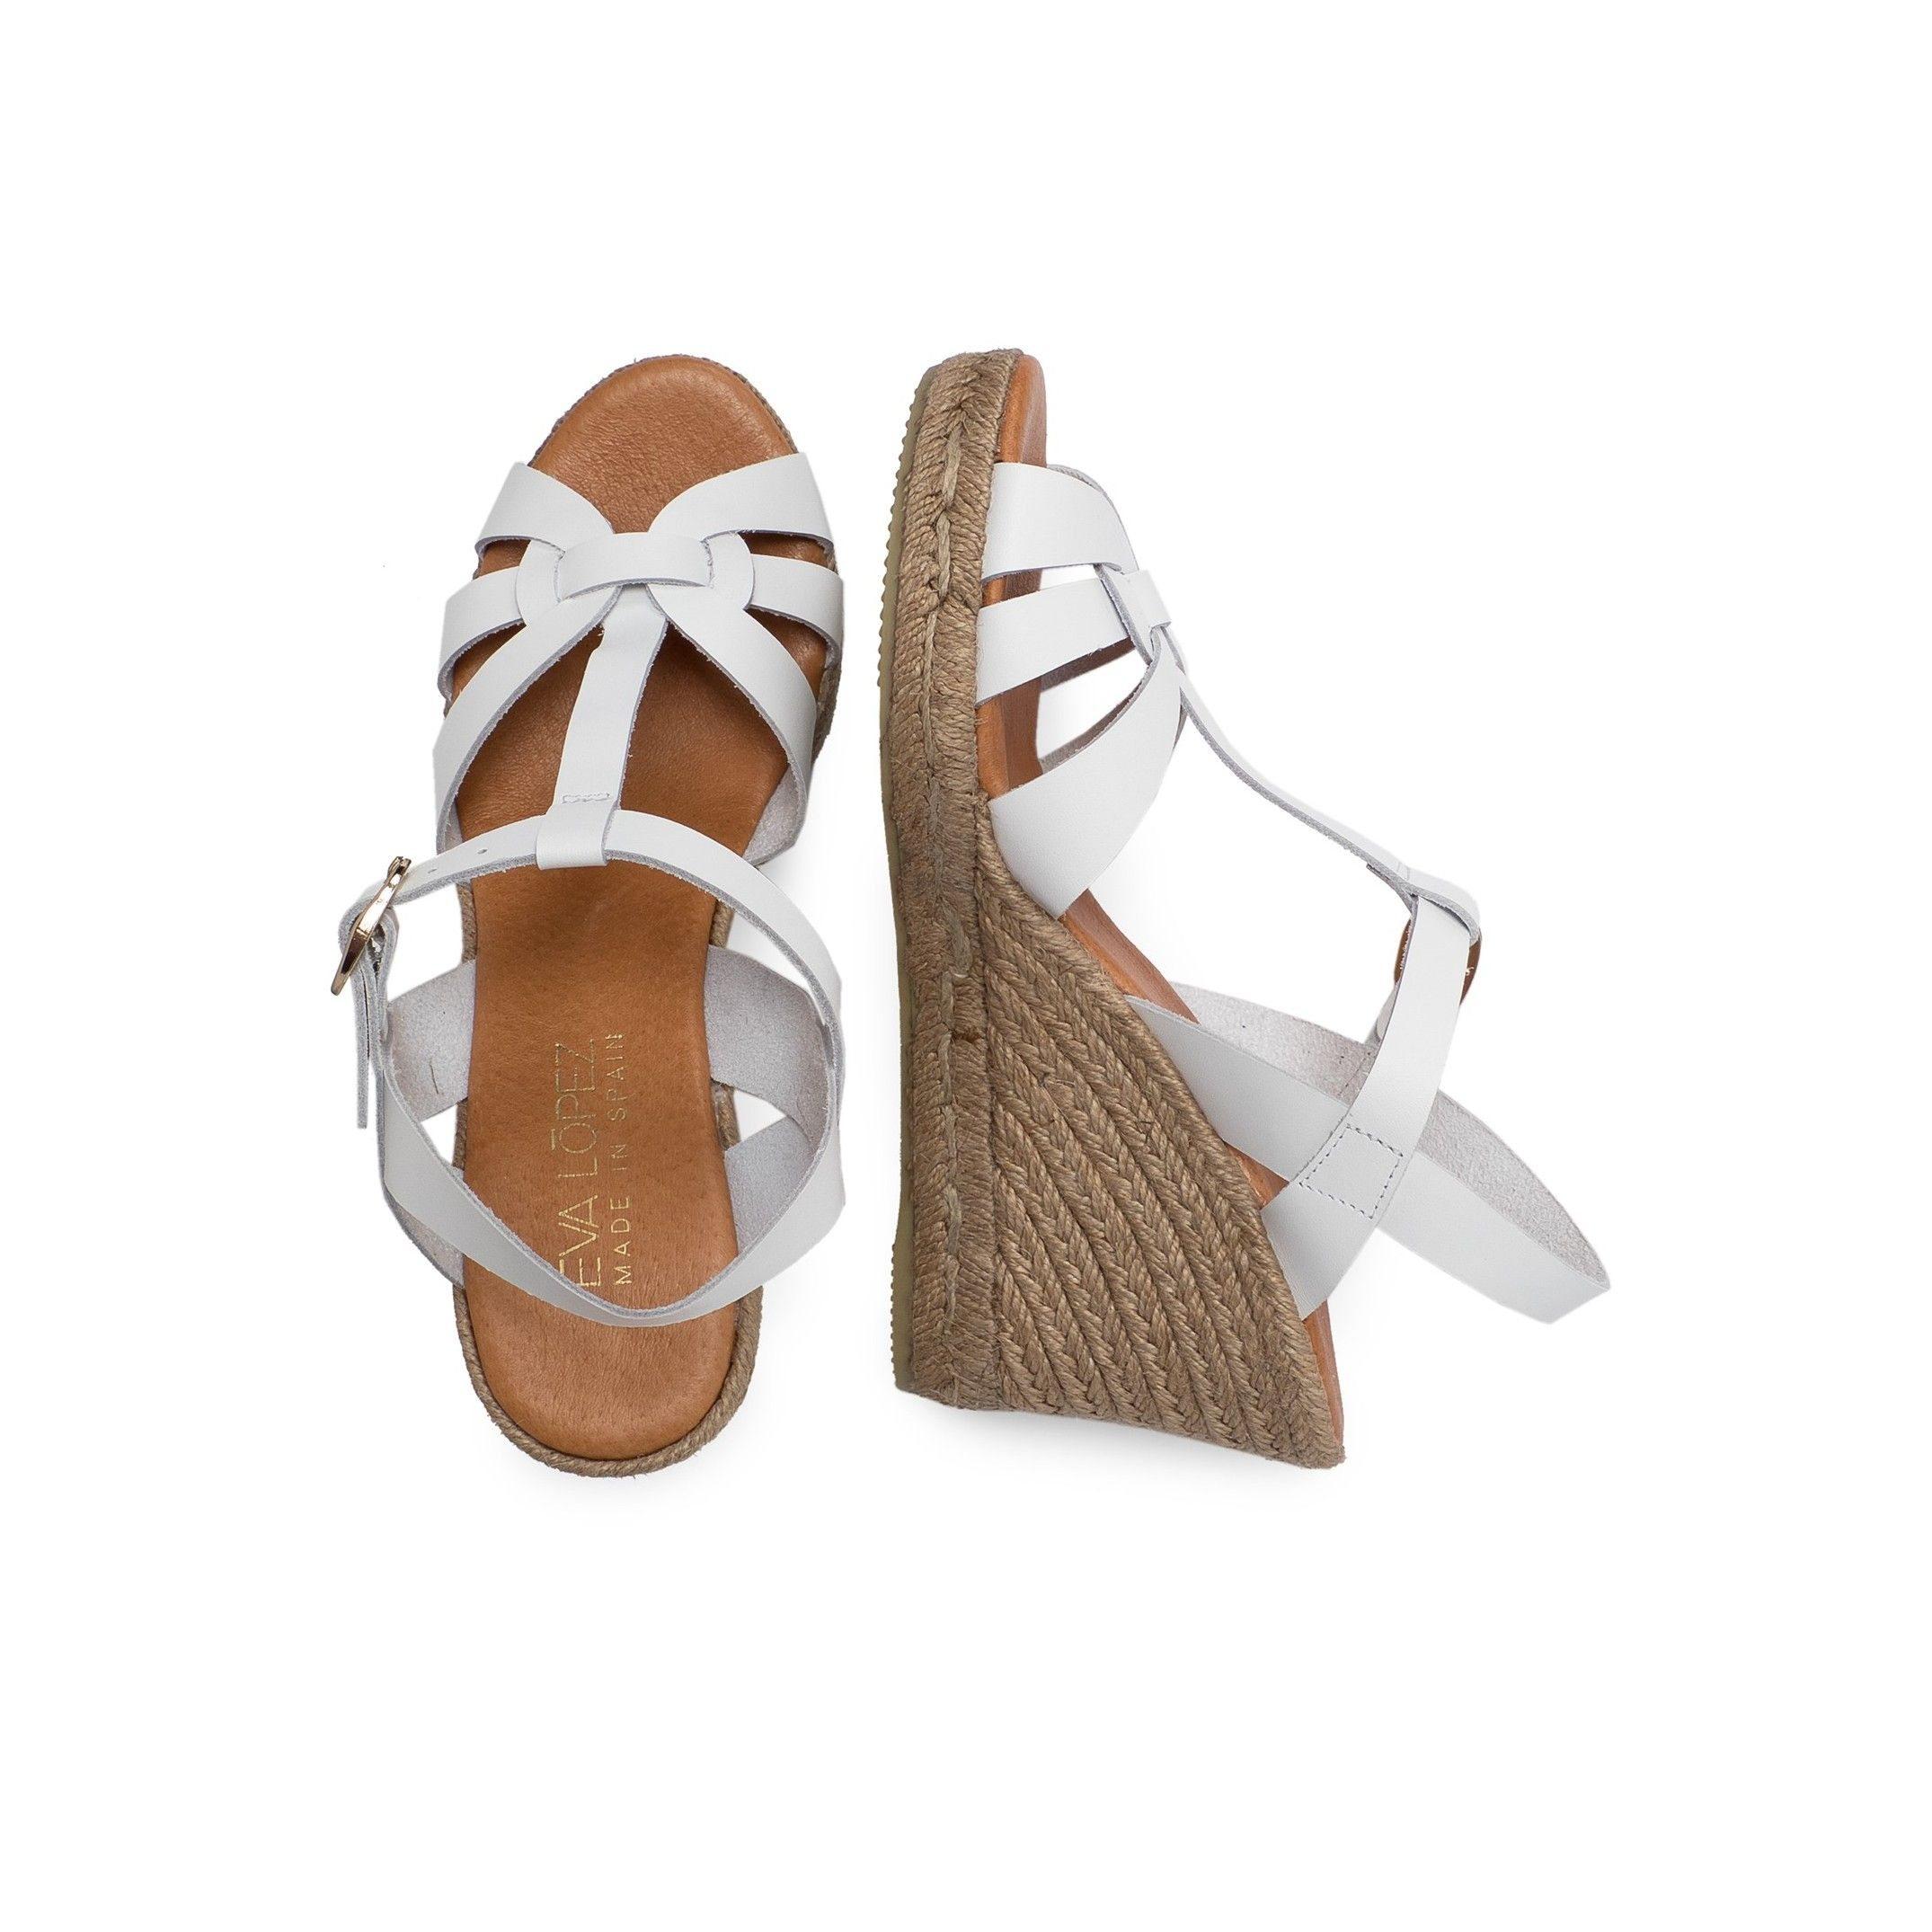 Eva Lopez Ankle Strap Wedge Sandals Women Summer